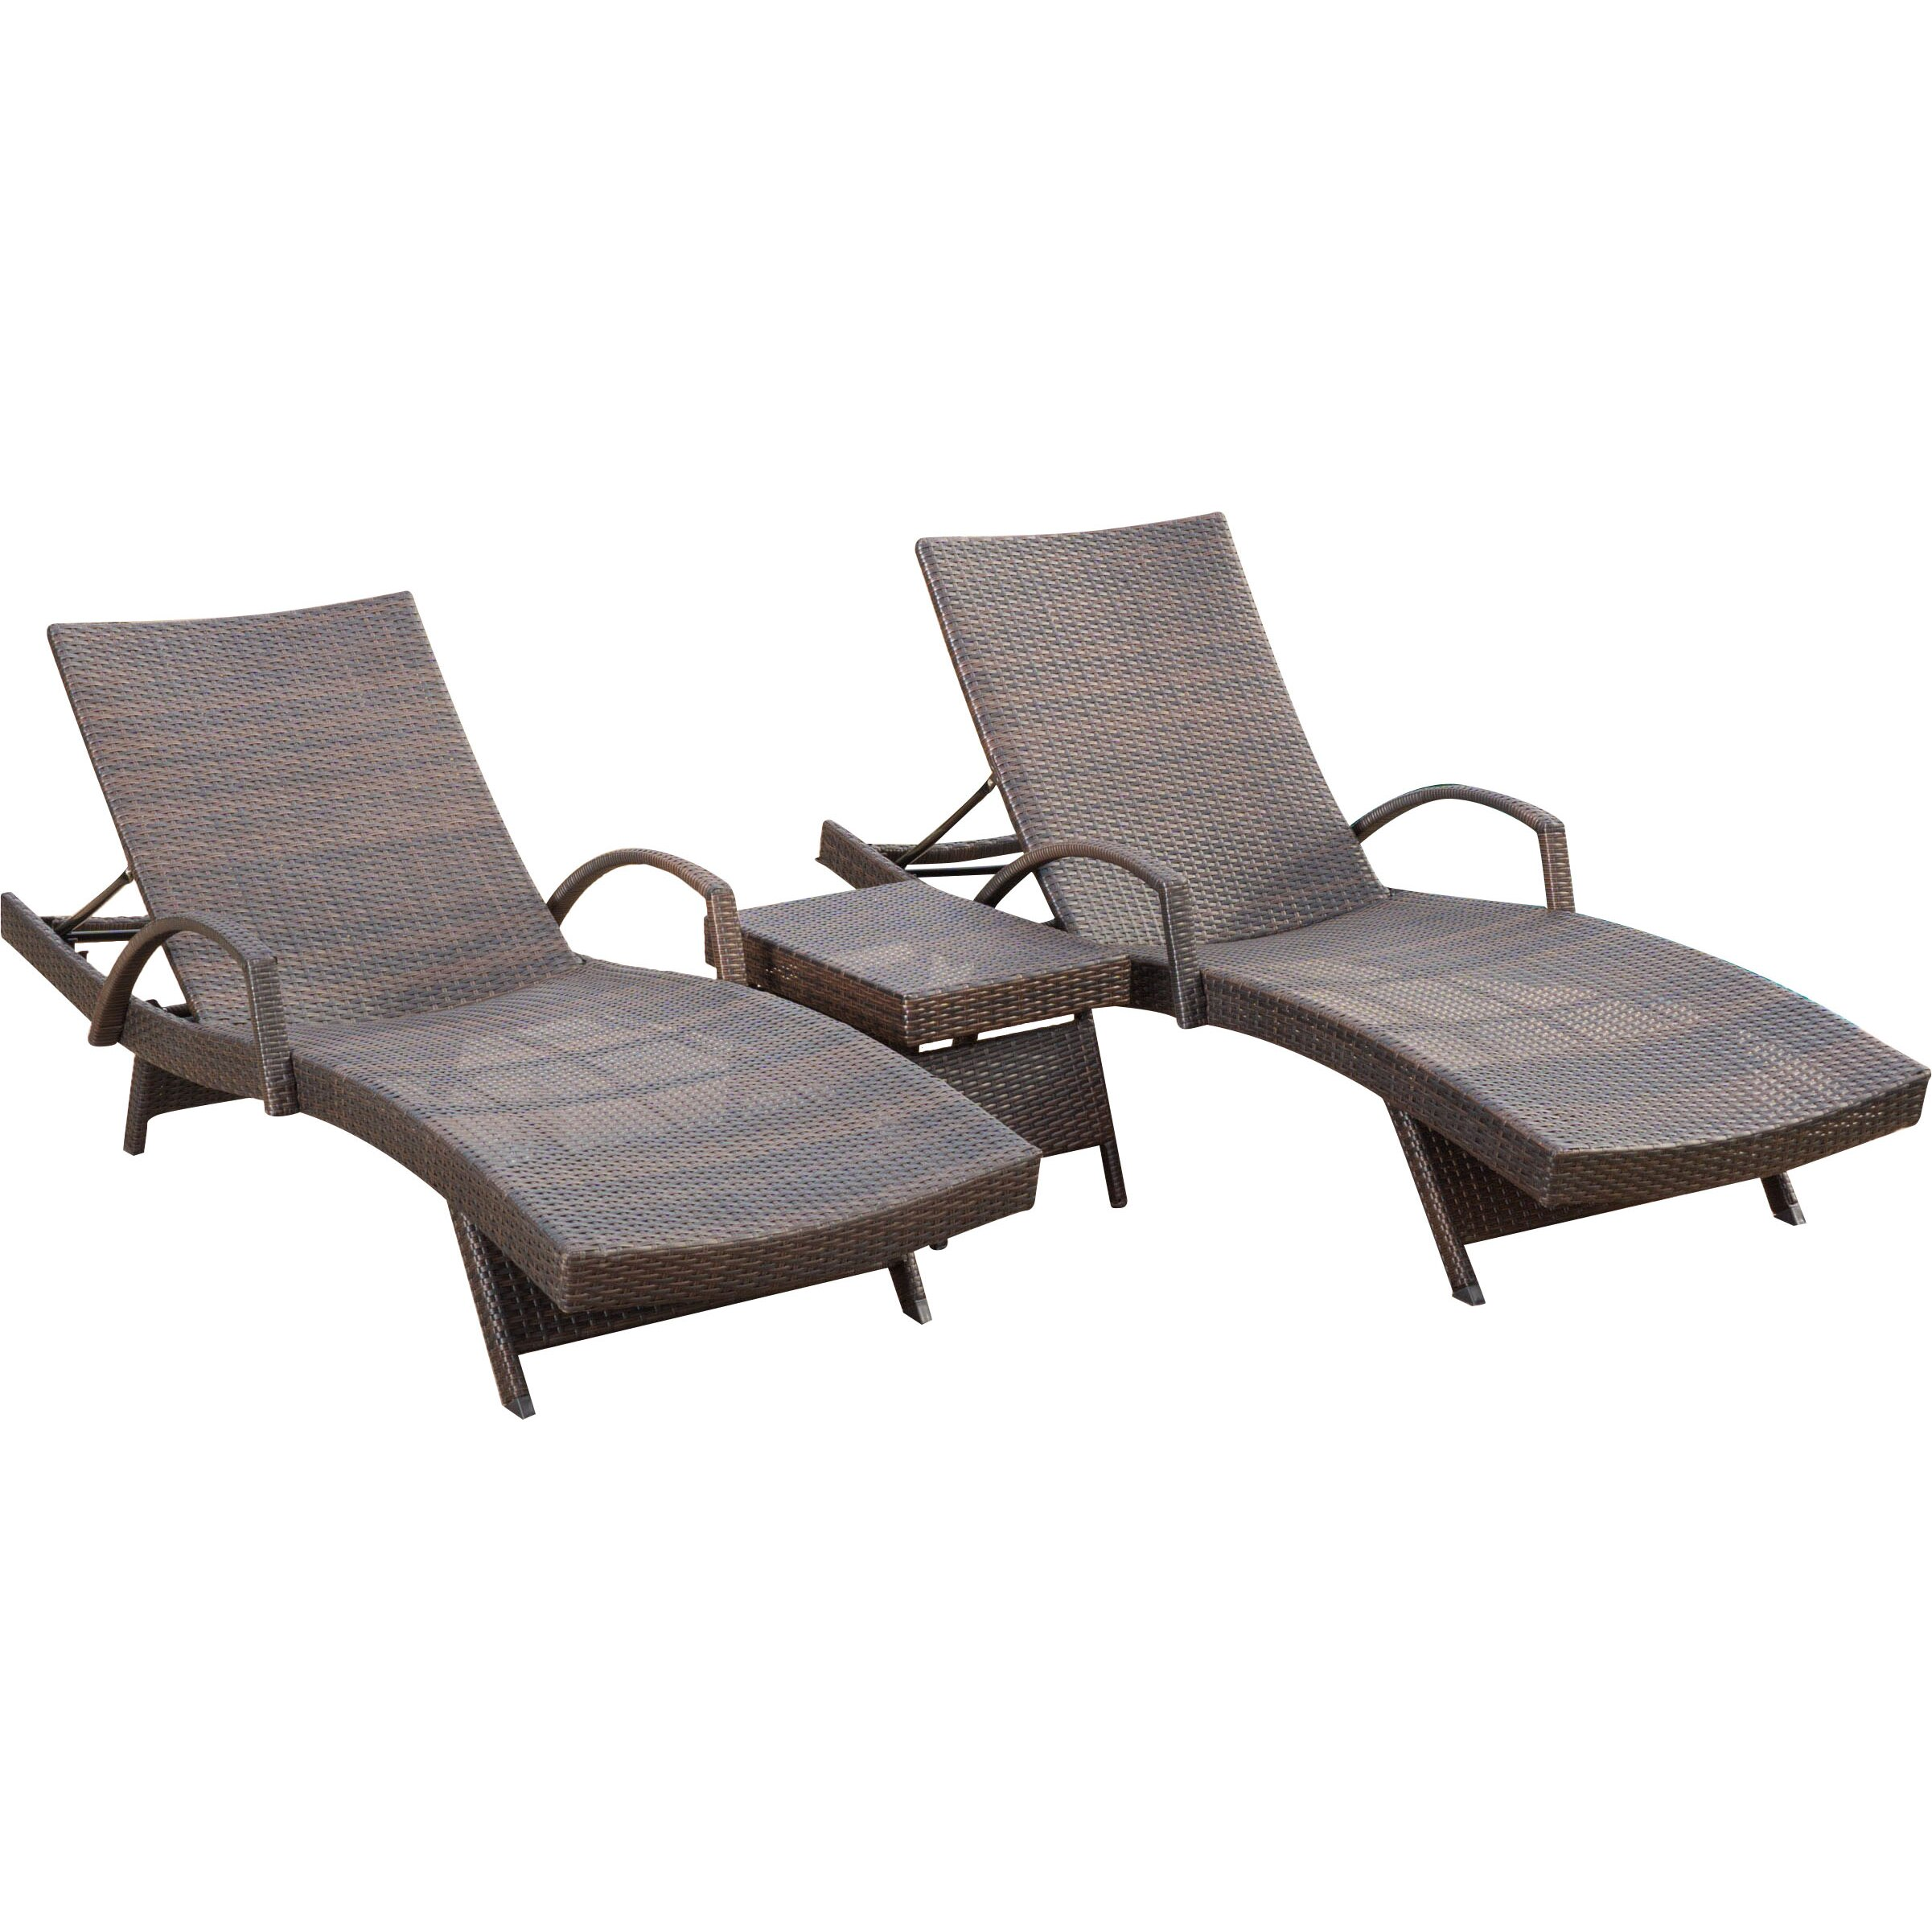 Darby Home Co Peyton 3 Piece Chaise Lounge Set & Reviews